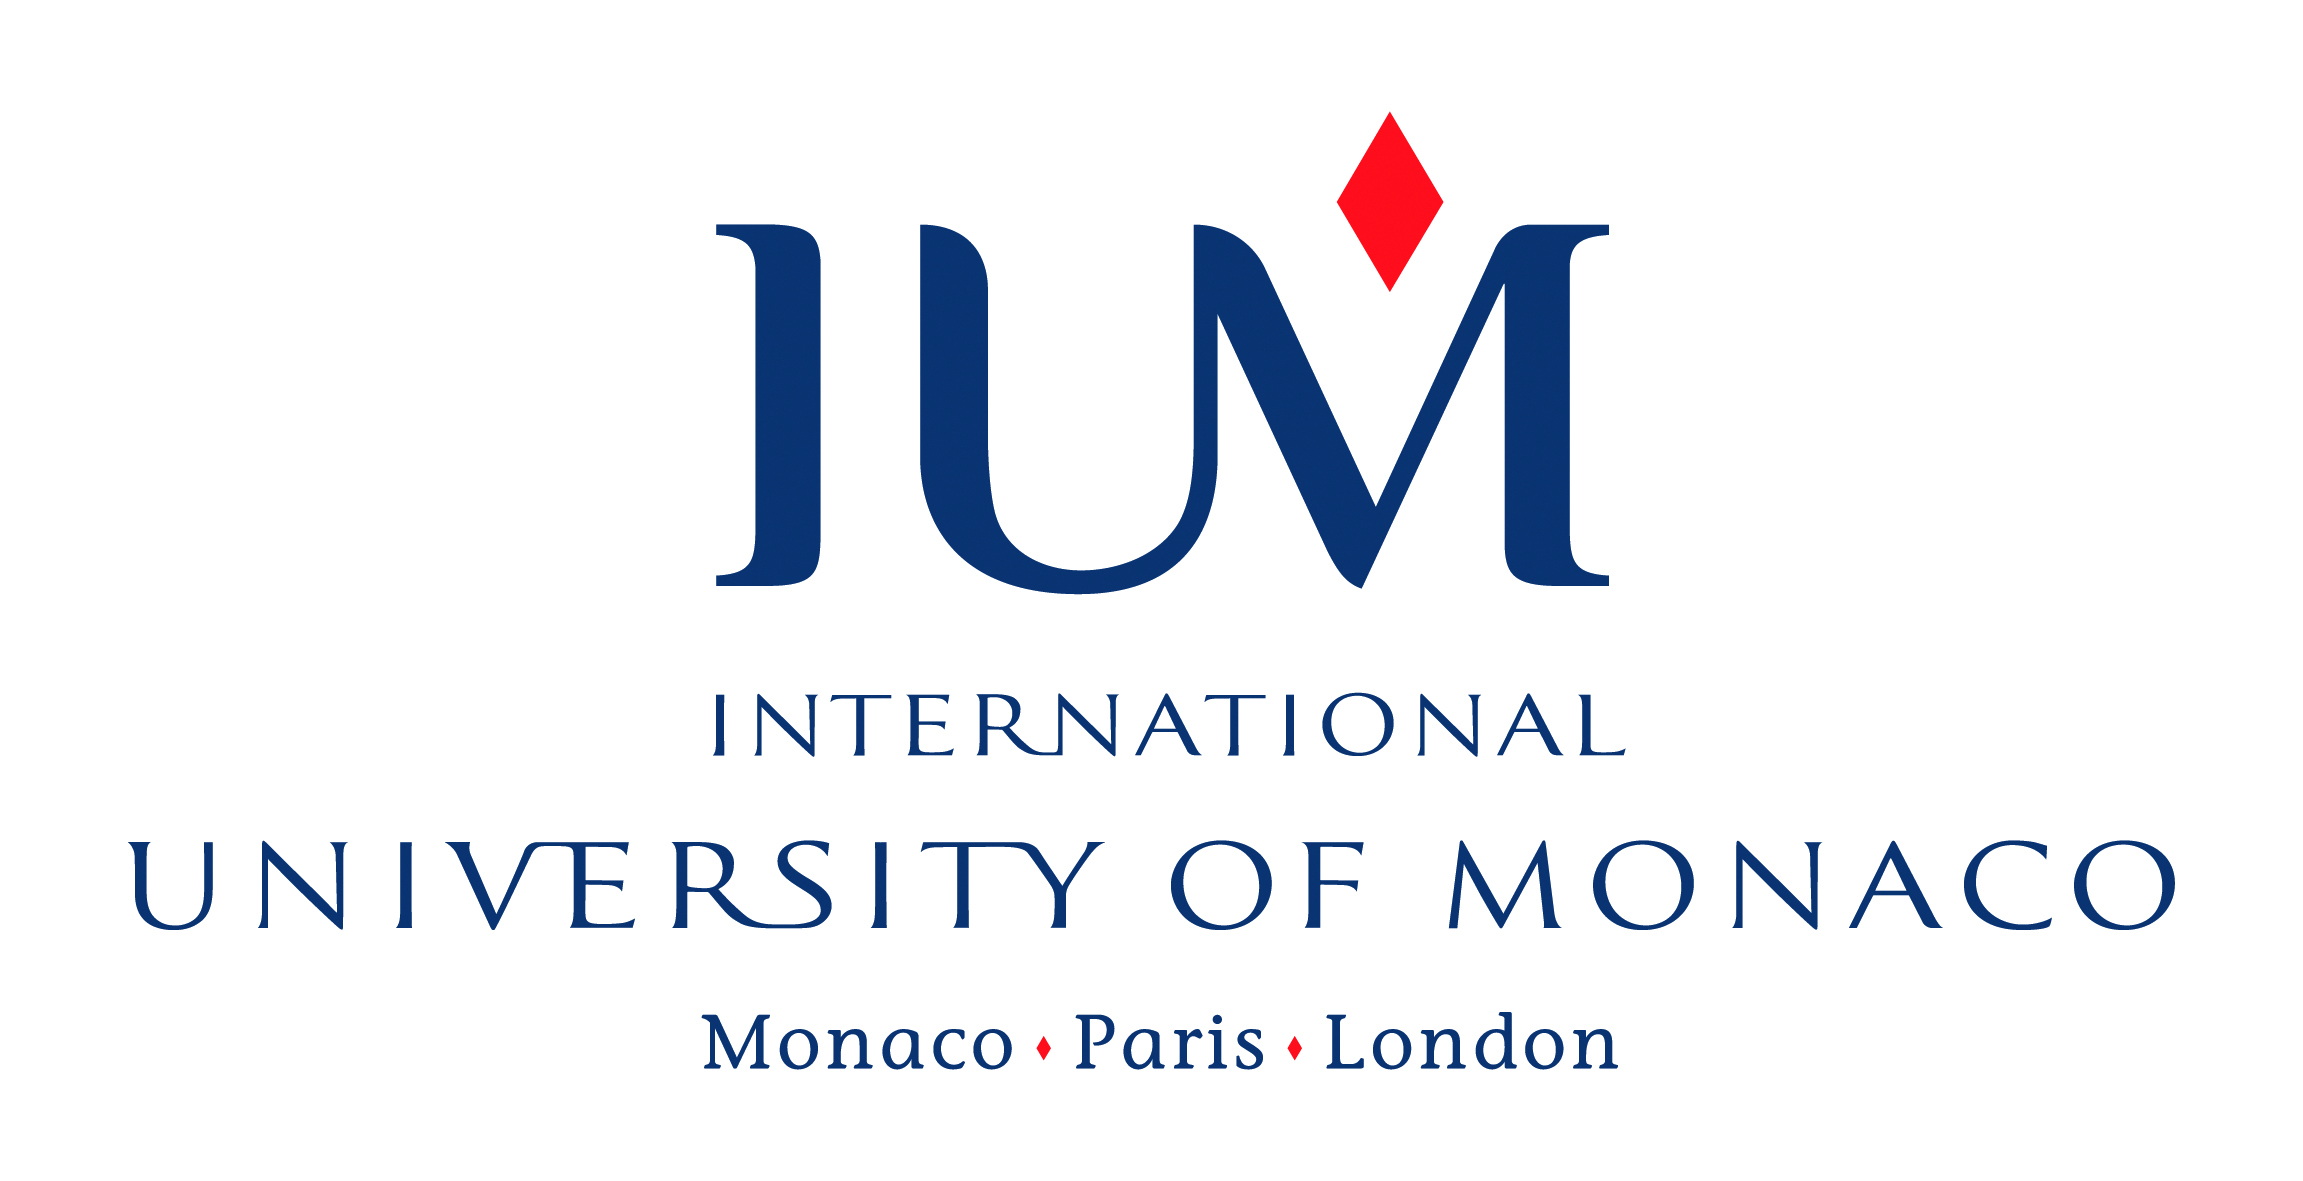 Logo of International University of Monaco (IUM)